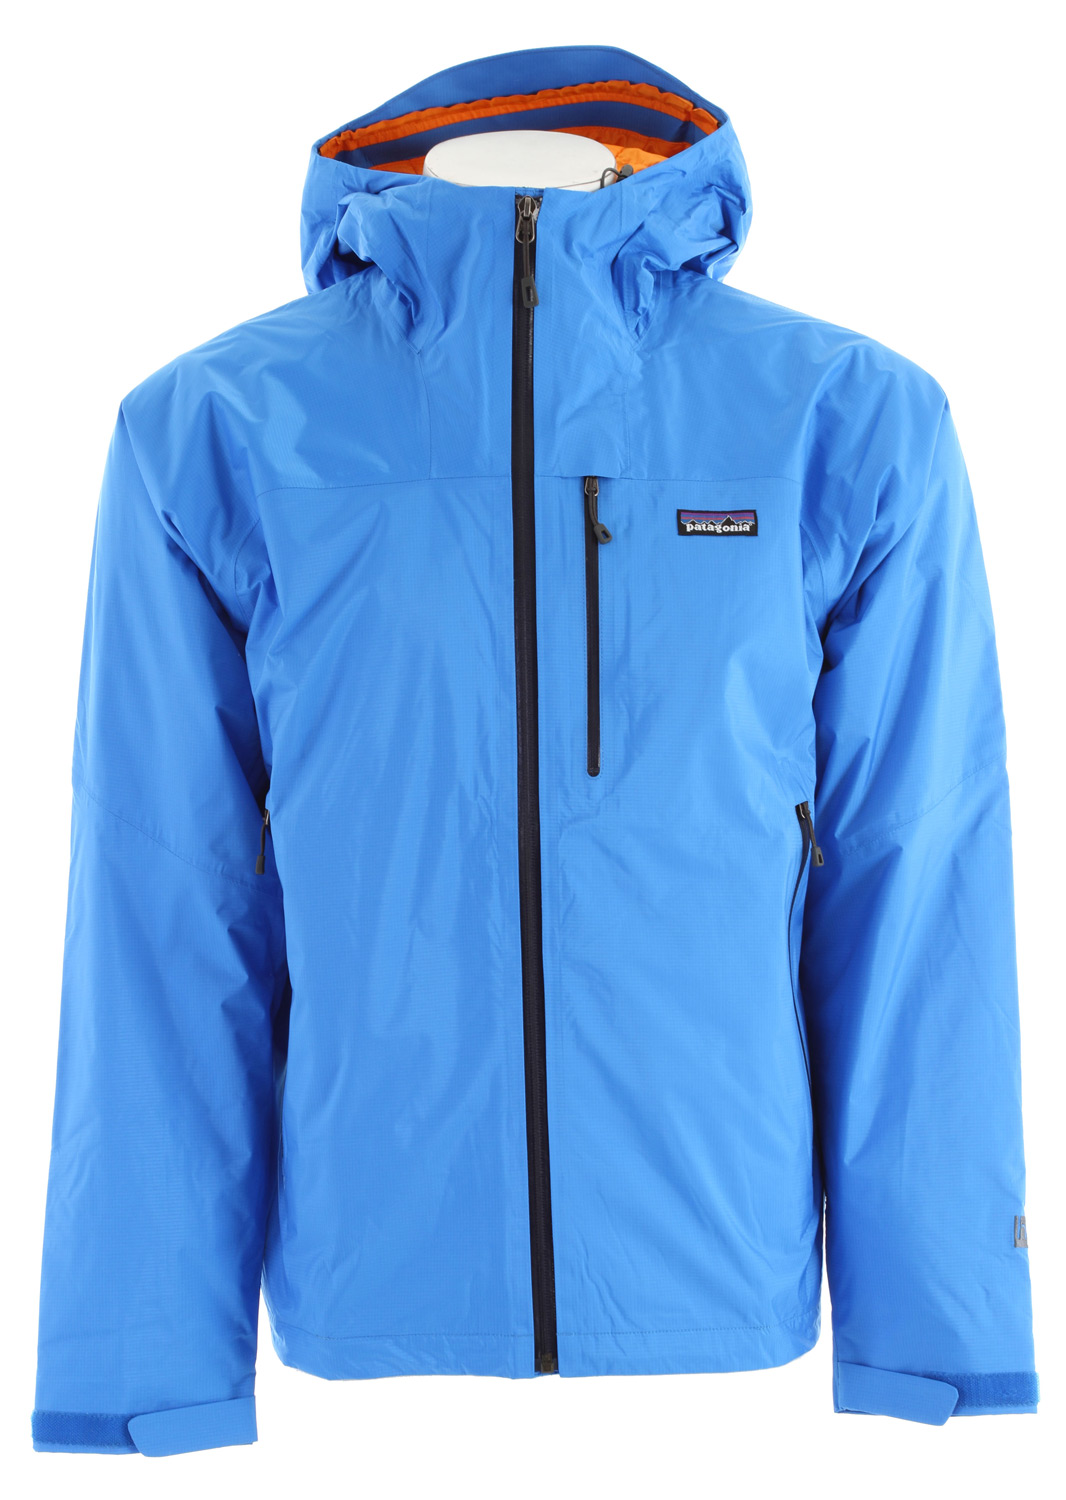 Waterproof, warm and superlight, this jacket has 2.5-layer nylon shell with a waterproof/breathable H2No barrier, and is insulated with Primaloft One polyester for cold and wet-weather protectionKey Features of the Patagonia Nano Storm Jacket: 2.5-layer nylon ripstop with a waterproof/breathable H2No barrier and Deluge DWR (durable water repellent) finish Lightweight 60-g Primaloft One polyester insulation provides excellent warmth and compressibility Unique quilt pattern holds insulation in place for durability Helmet-compatible, fully-adjustable hood with laminated visor for visibility in bad conditions Watertight, coated center-front-zipper Self-fabric hook-and-loop cuff closures and dual-adjust drawcord hem seal out the elements Pockets: Two handwarmers; one exterior left chest; one internal zippered pocket, one internal drop-in Regular fit (24.1 oz) 683 g Fabric: Shell: 2.5-layer 2.6-oz 50-denier 100% nylon ripstop with a waterproof/breathable H2No barrier. Insulation: 60-g Primaloft One polyester. Lining: 1.4-oz 22-denier 100% recycled polyester. Shell and lining have a Deluge DWR finish - $239.95